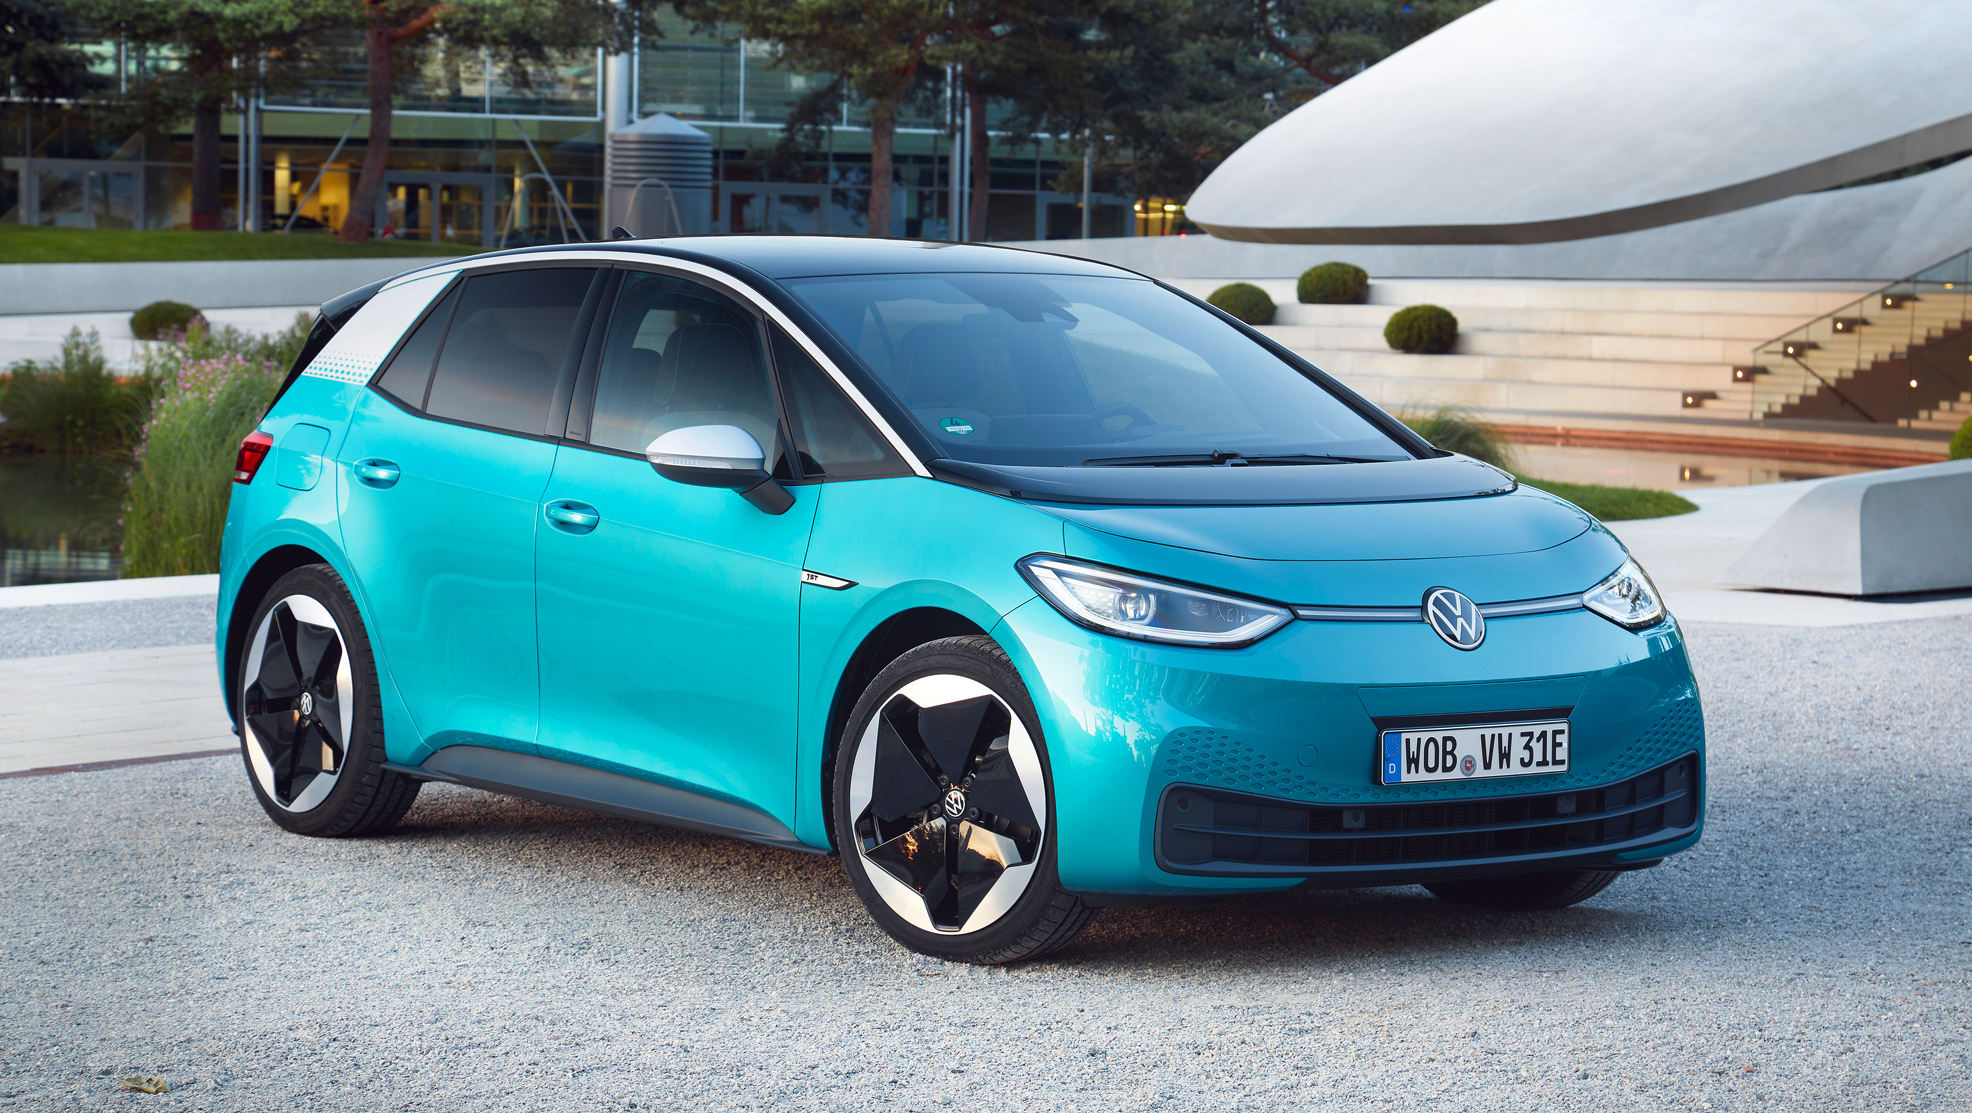 Volkswagen Id Electric Car Range Pushed Back To 2023 In Australia As Brand Labels New Ev Taxes Ridiculous Car News Carsguide